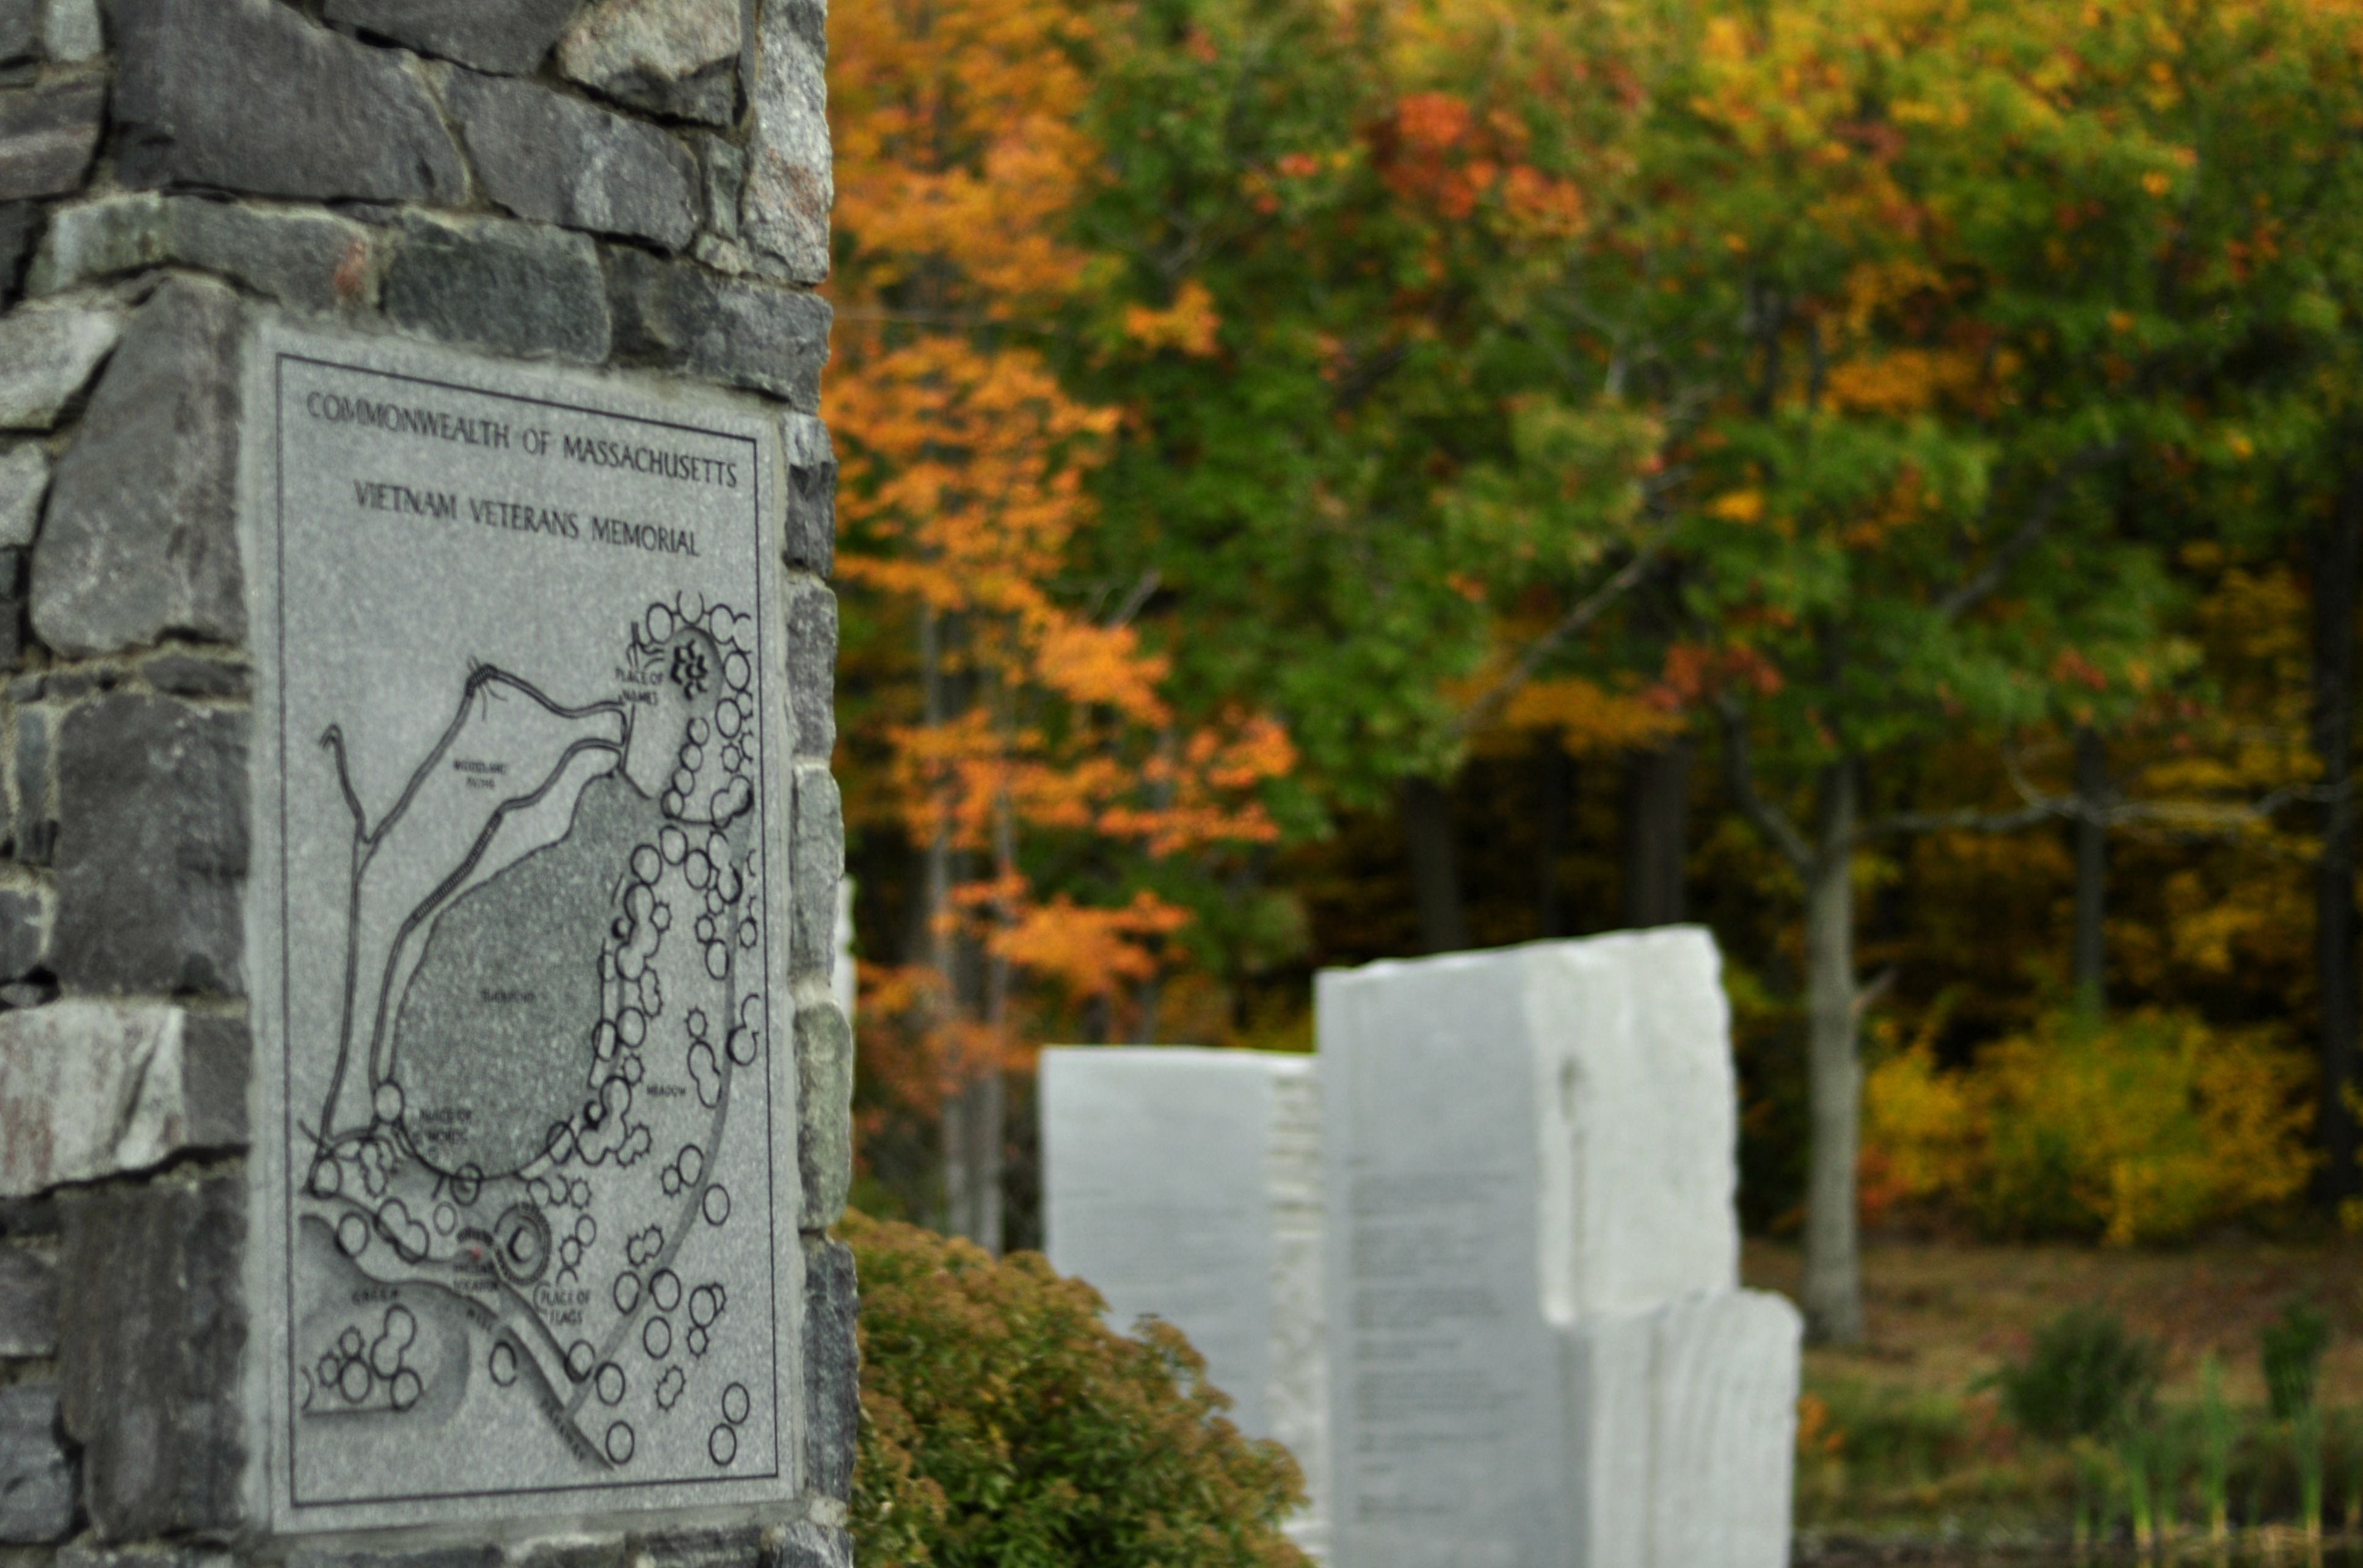 Engraved stone column monument at Worcester Vietnam Veteran Memorial with additional stone columns in the background.